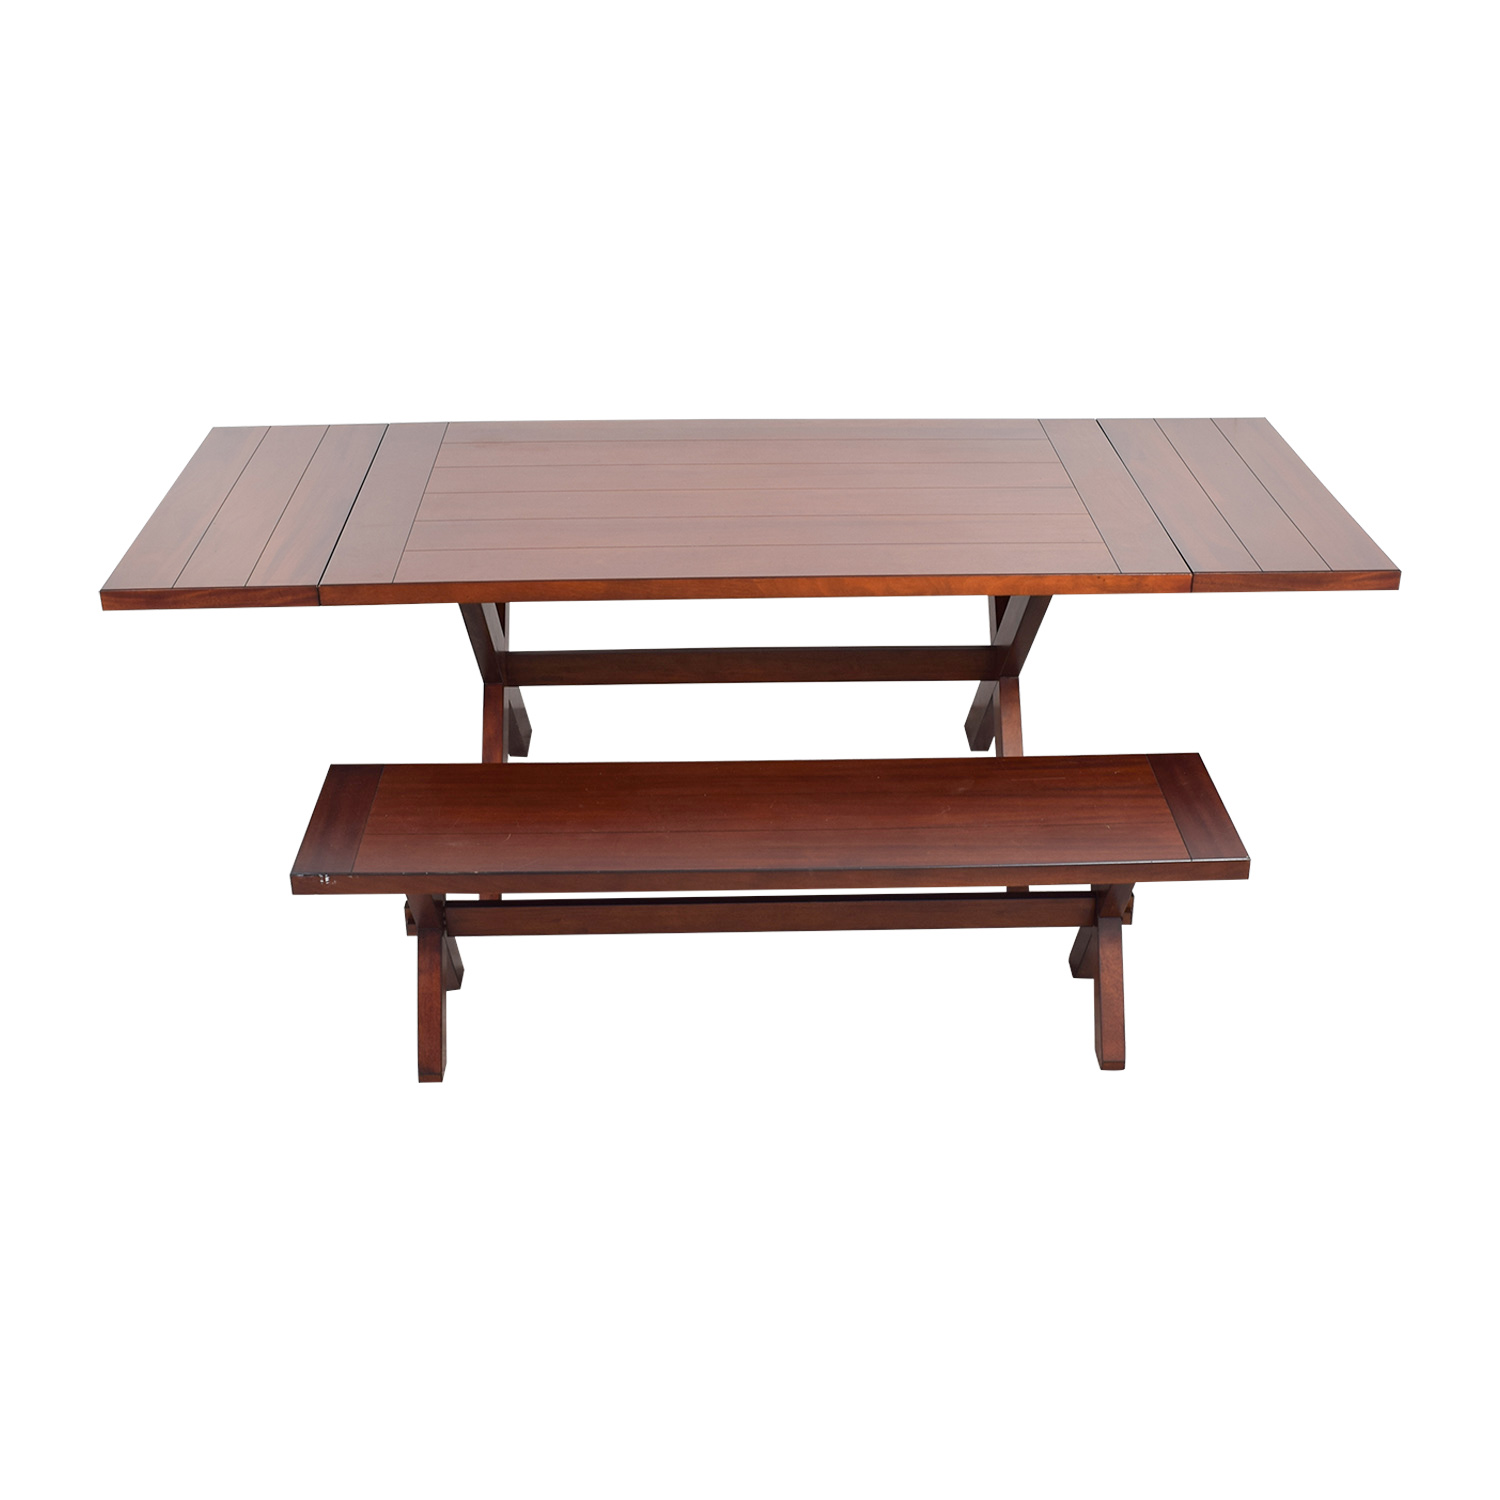 90 Off Pier 1 Pier 1 Imports Nolan Wood Dining Table